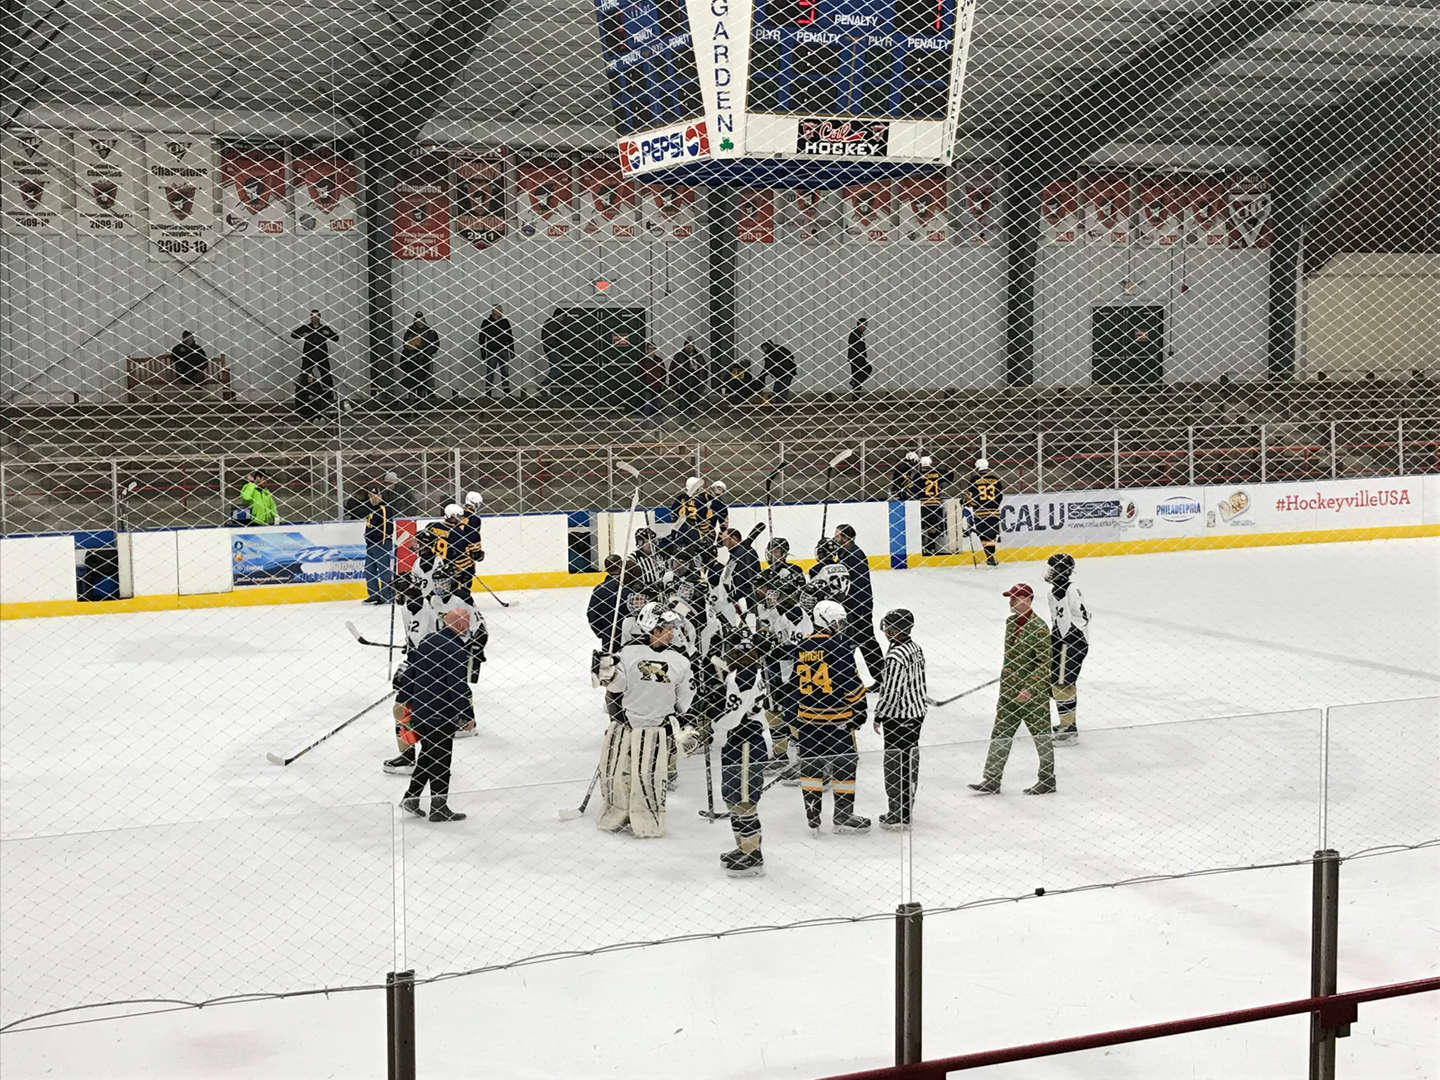 Ringgold won at home vs Carrick 3-1 Final Evan Cook, senior at Yough Senior High  had 31 saves on 32 shots.  Ringgold's record to 10-3-0 and remain in 2nd place in their division. Pic is team giving props to fans after handshakes!